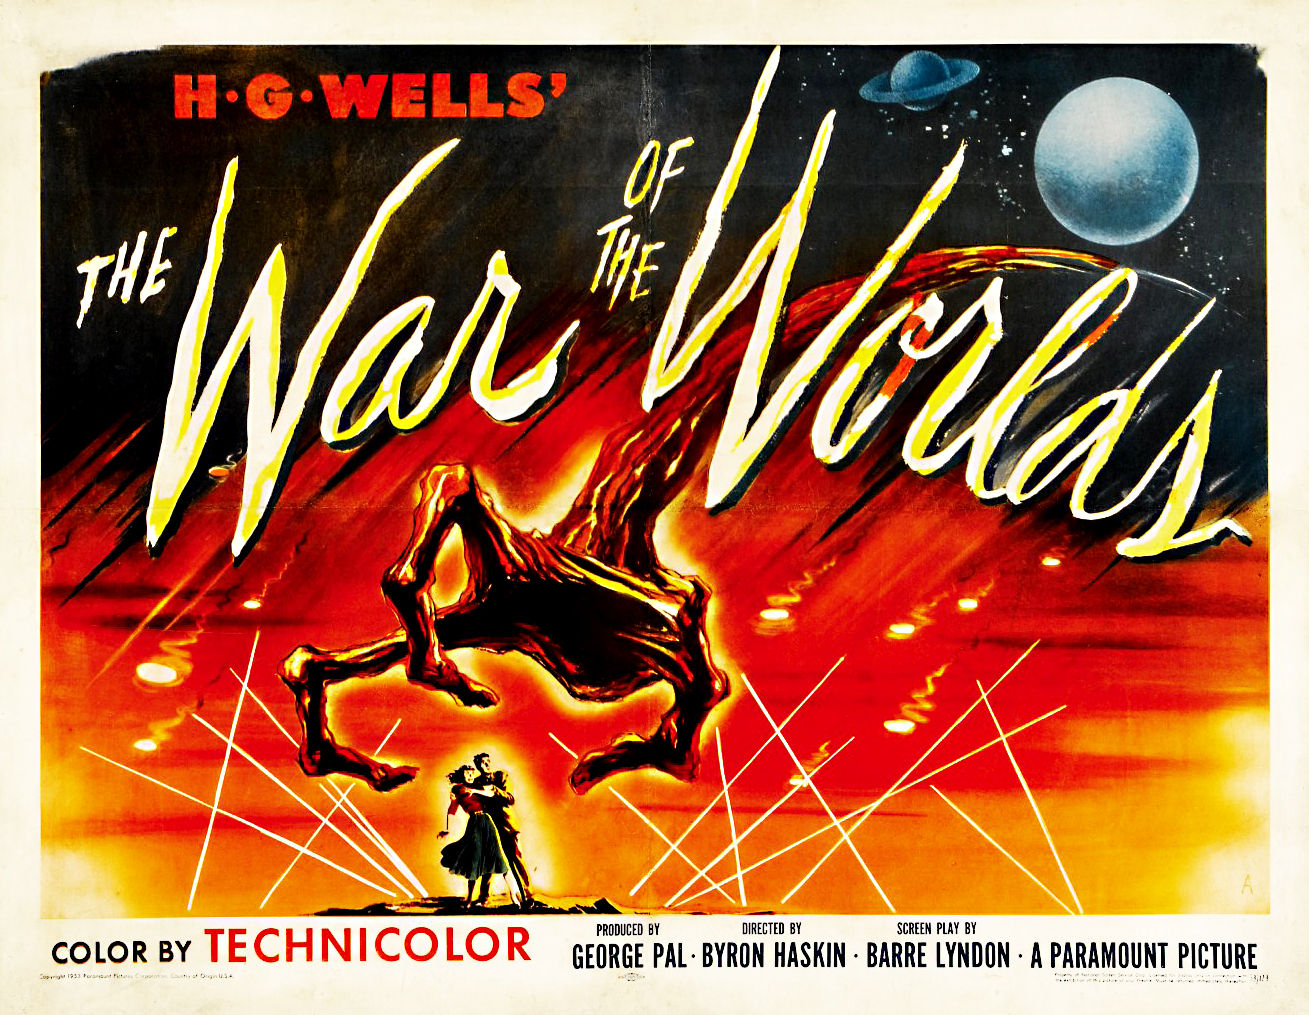 The Geeky Nerfherder Movie Poster Art War Of Worlds 1953 Short Circuit Posters From Shop